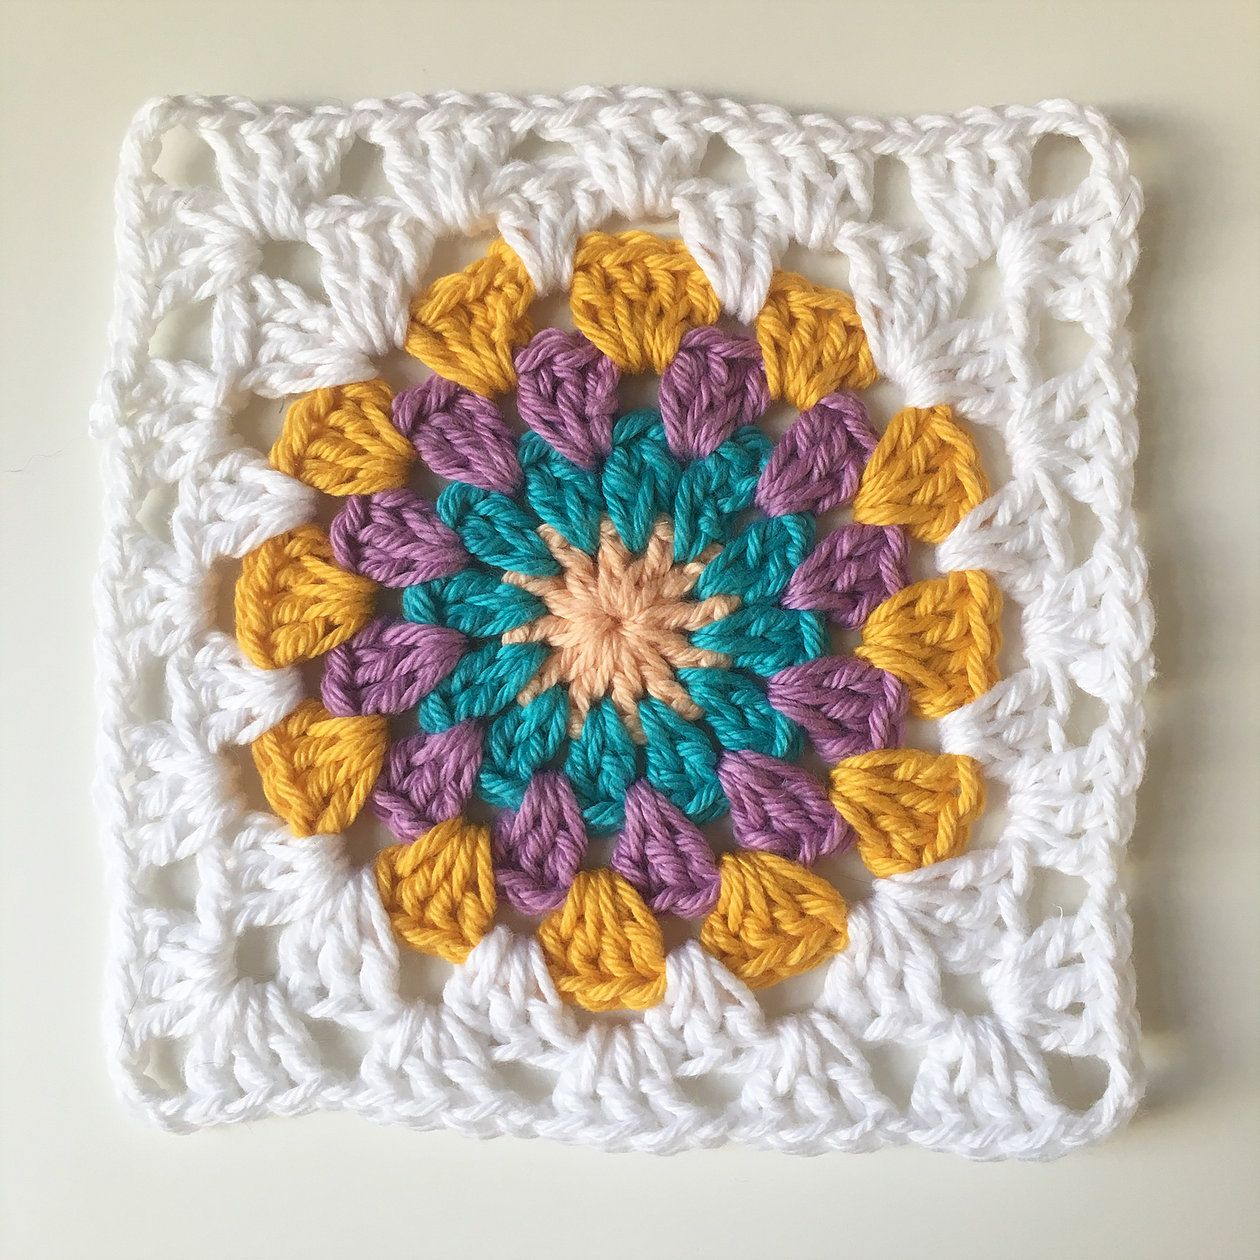 Crochet Granny Circle Square Free Pattern Ollie Bella For The